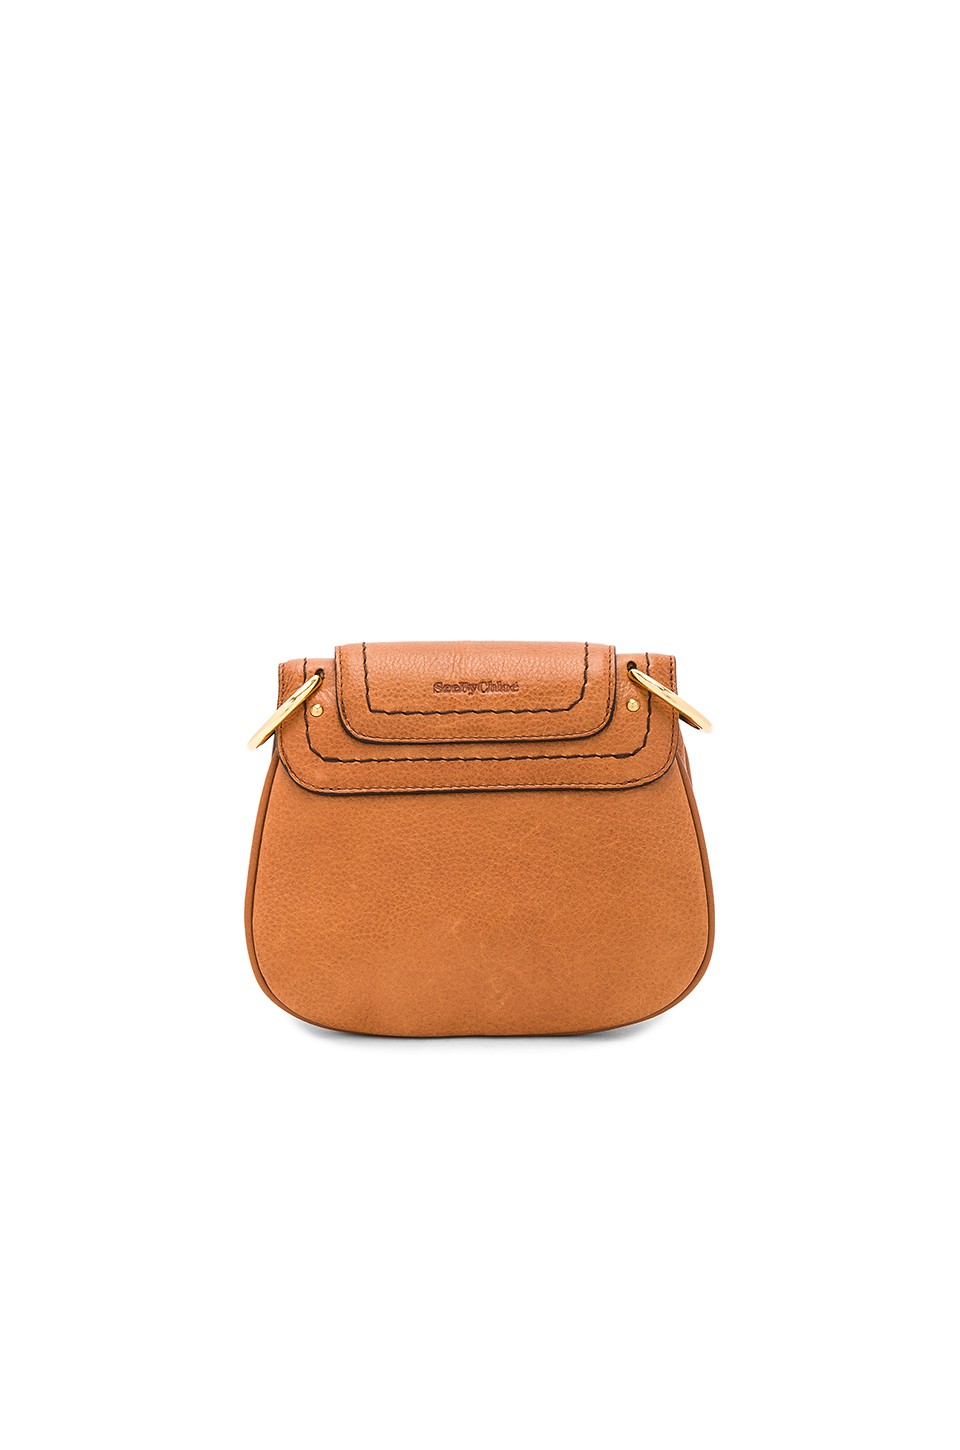 71d33dd5 See By Chloe Suzie Small Crossbody Bag in Caramelo